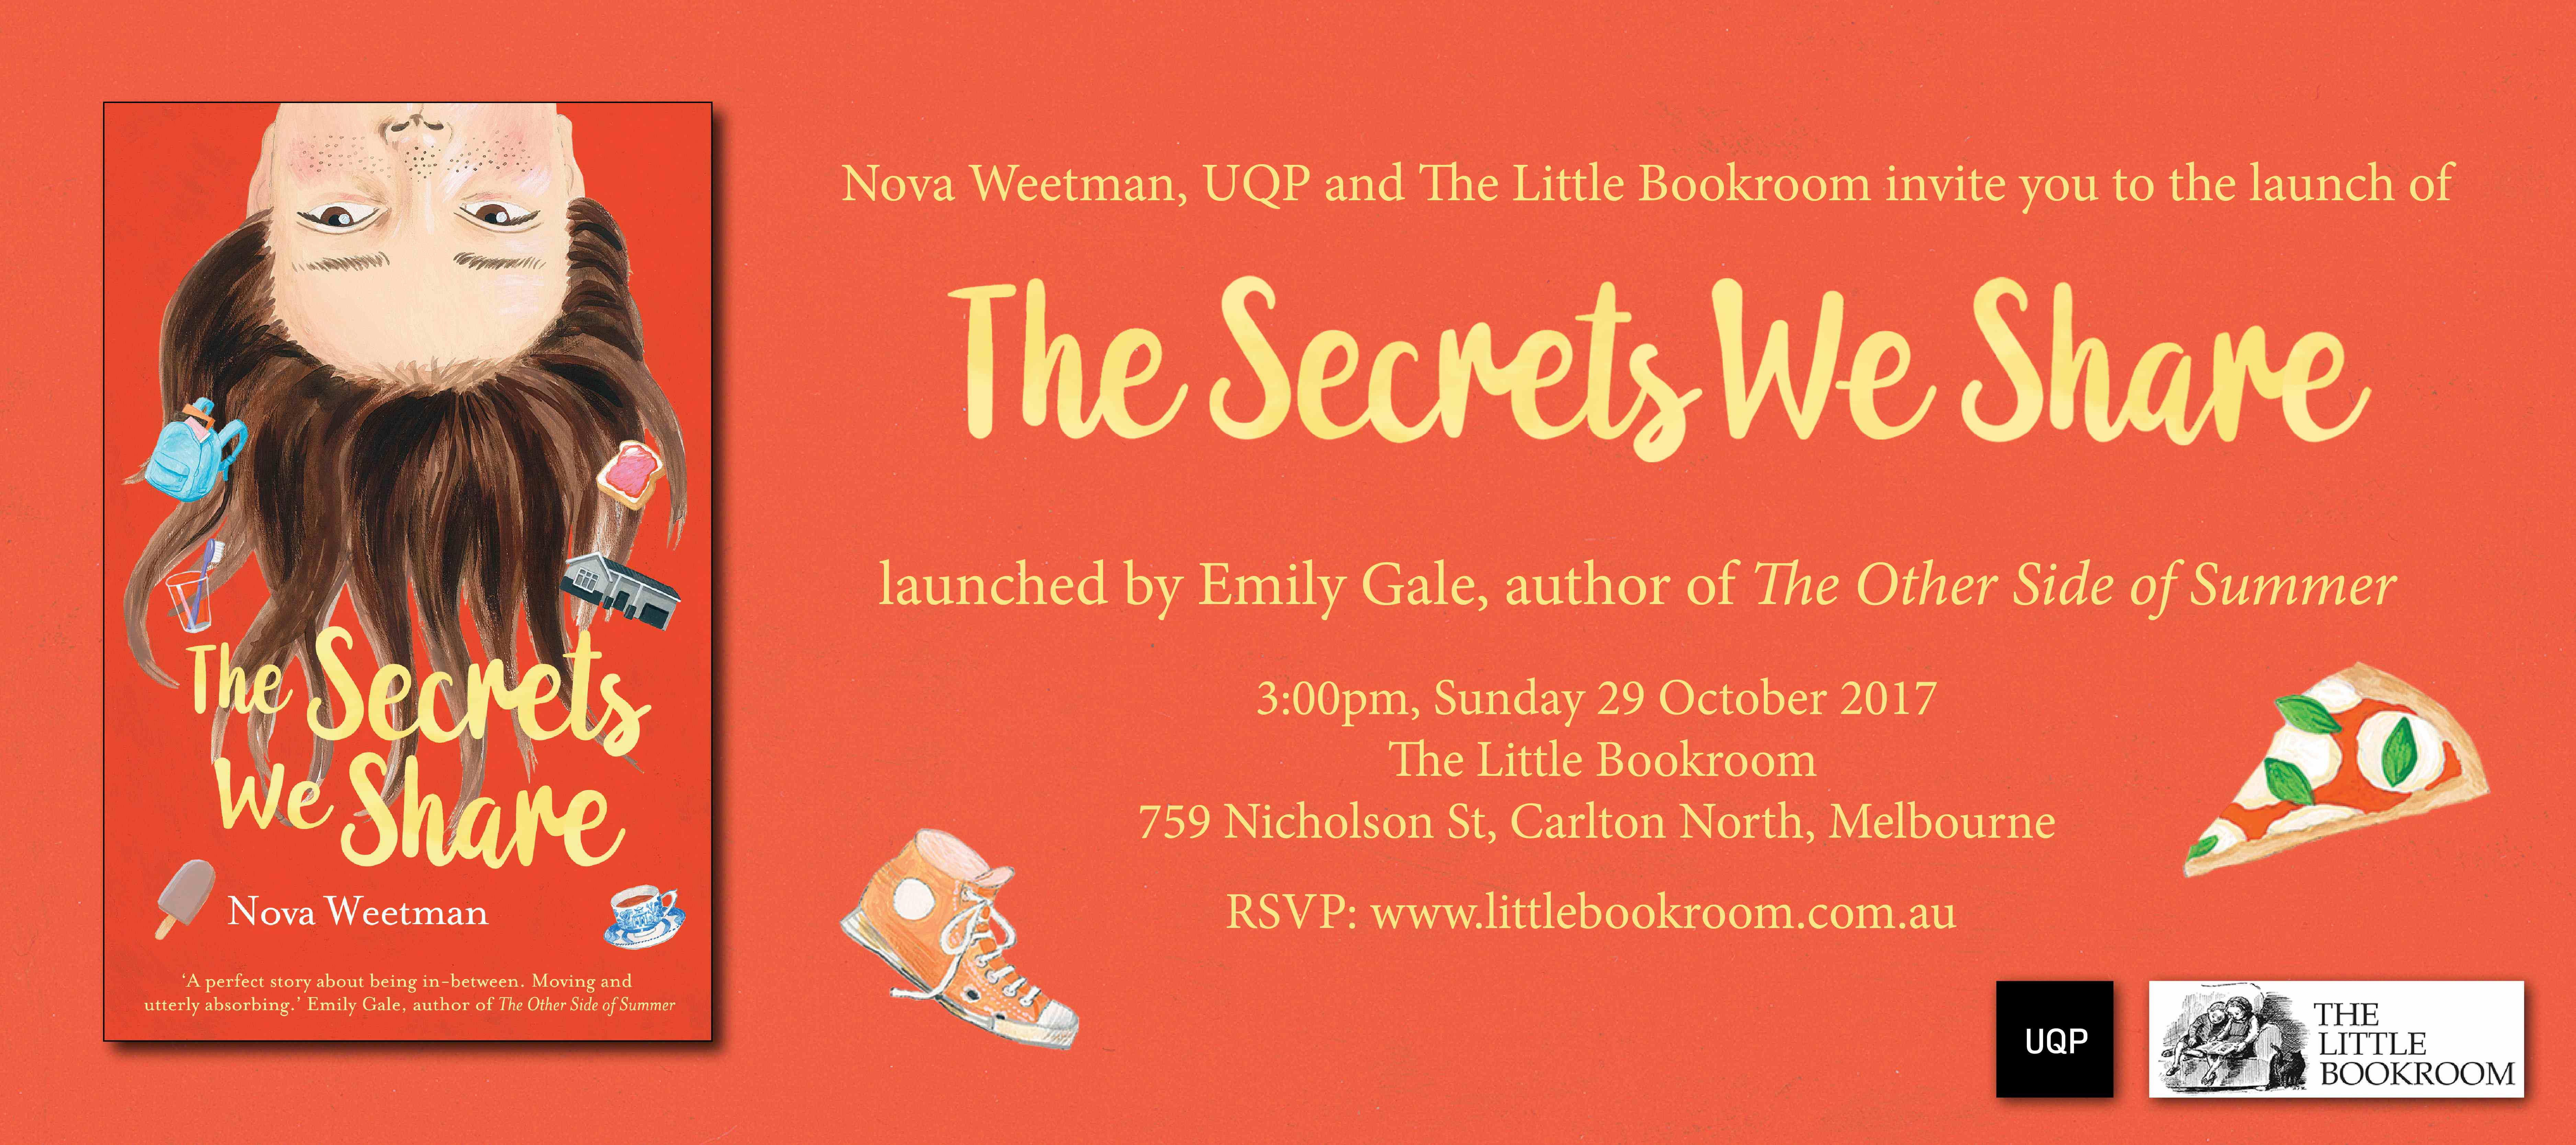 Book Launch: The Secrets We Share by Nova Weetman